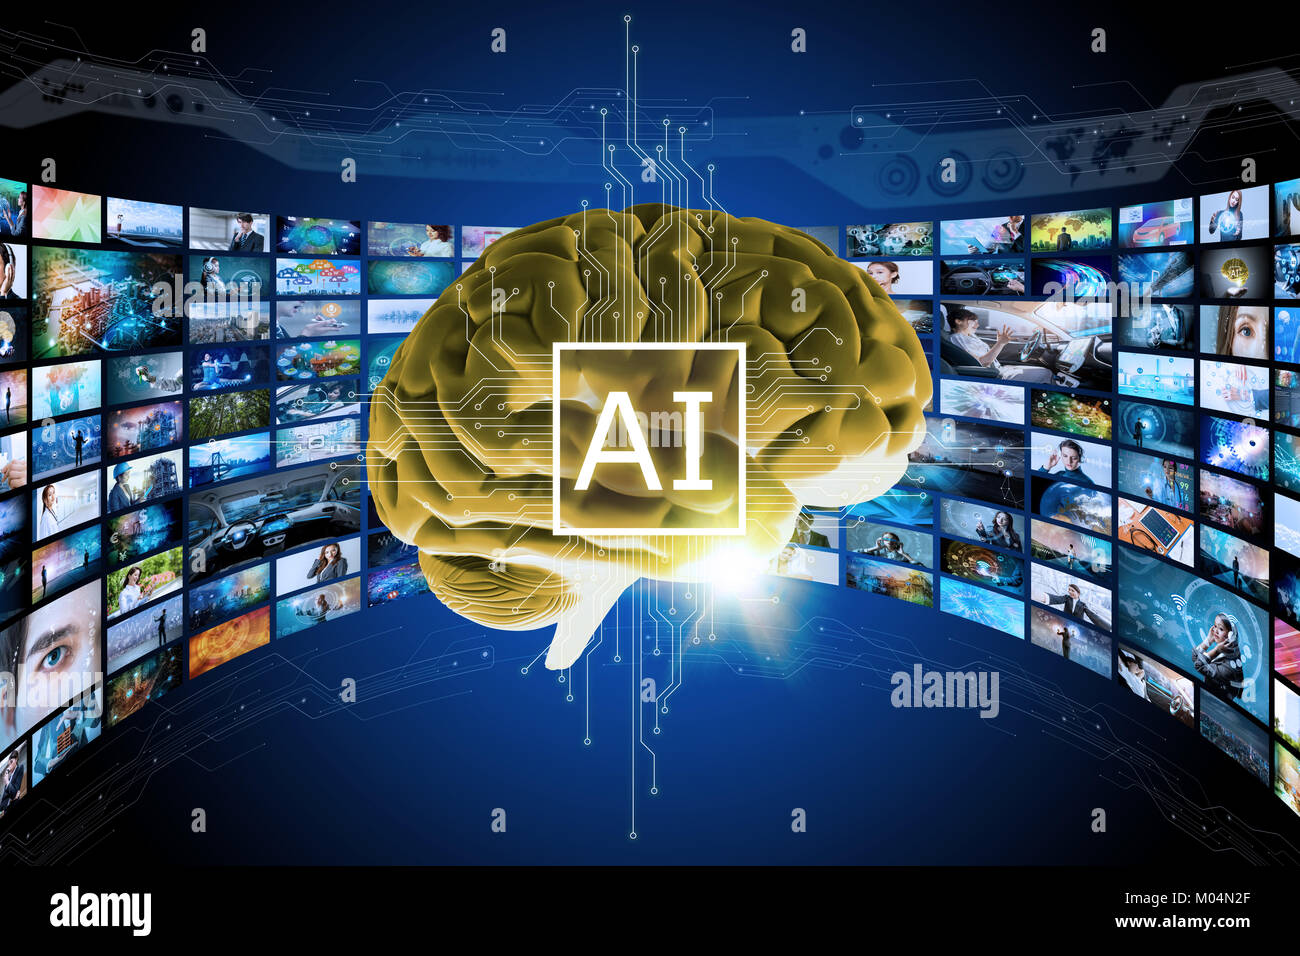 AI (Artificial Intelligence) concept. 3D rendering virtual brain and visualized memories. Cloud computing. Big data. - Stock Image